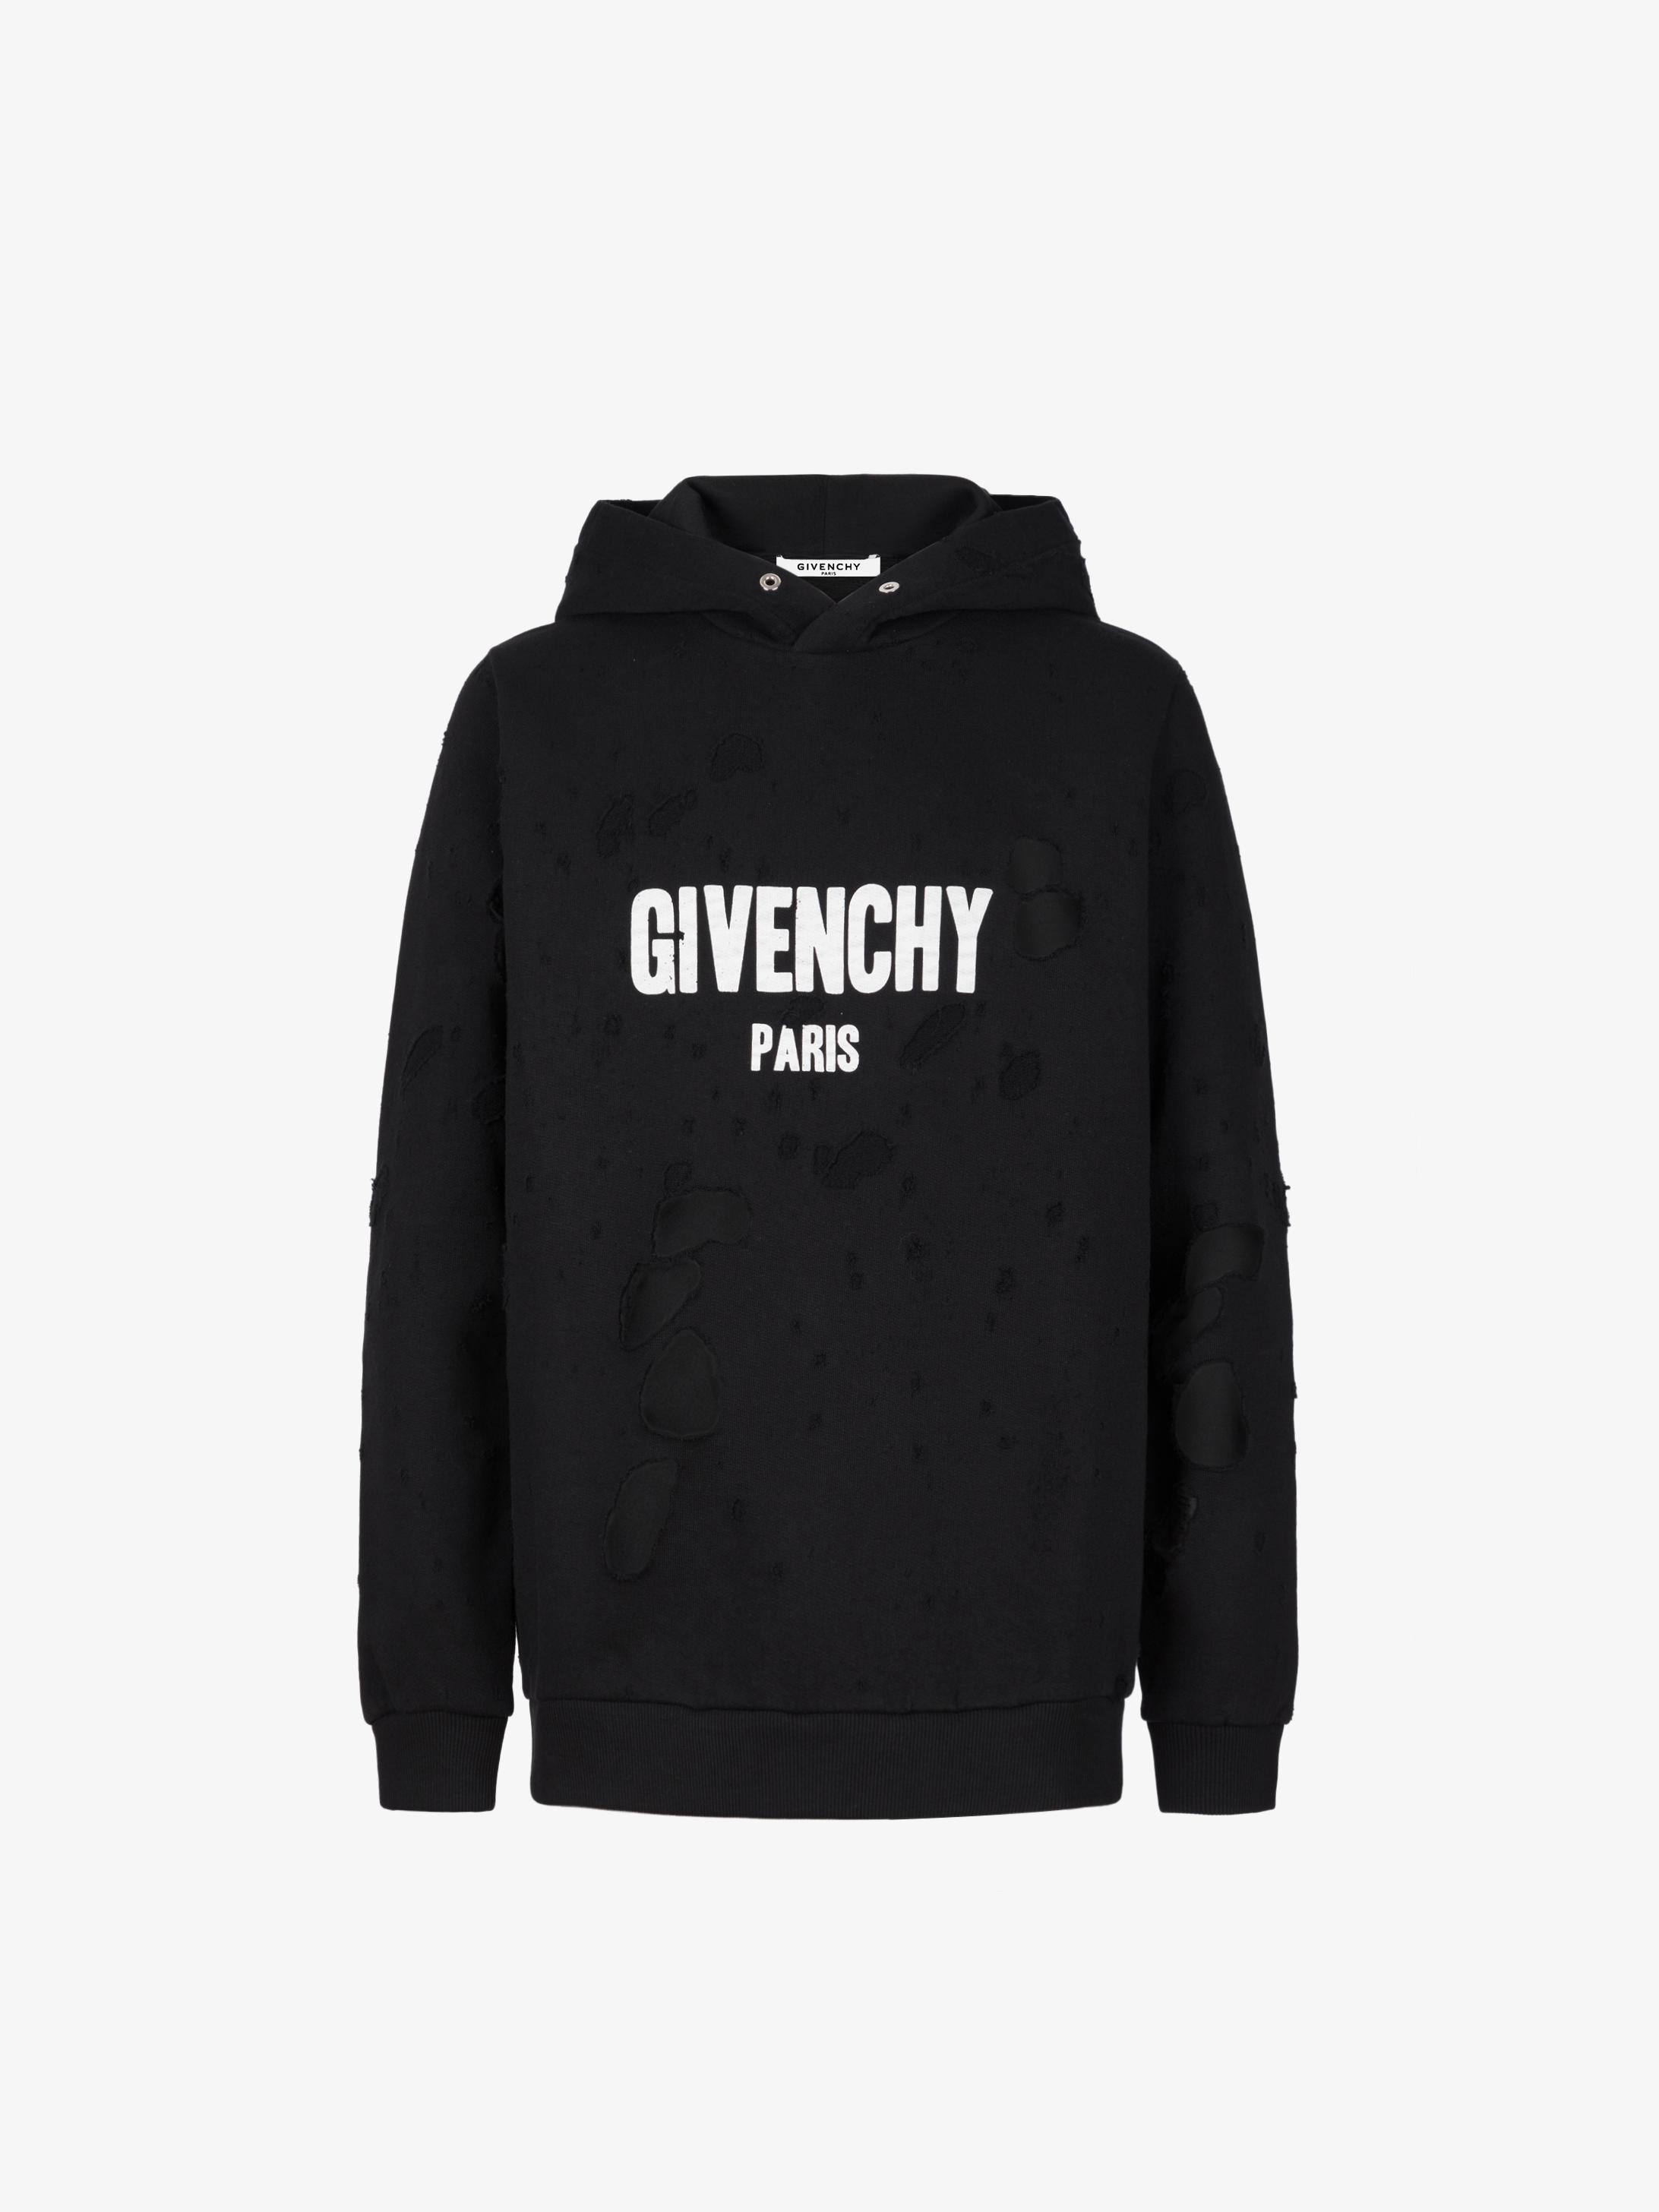 Givenchy Paris Destroyed Hoodie Givenchy Paris